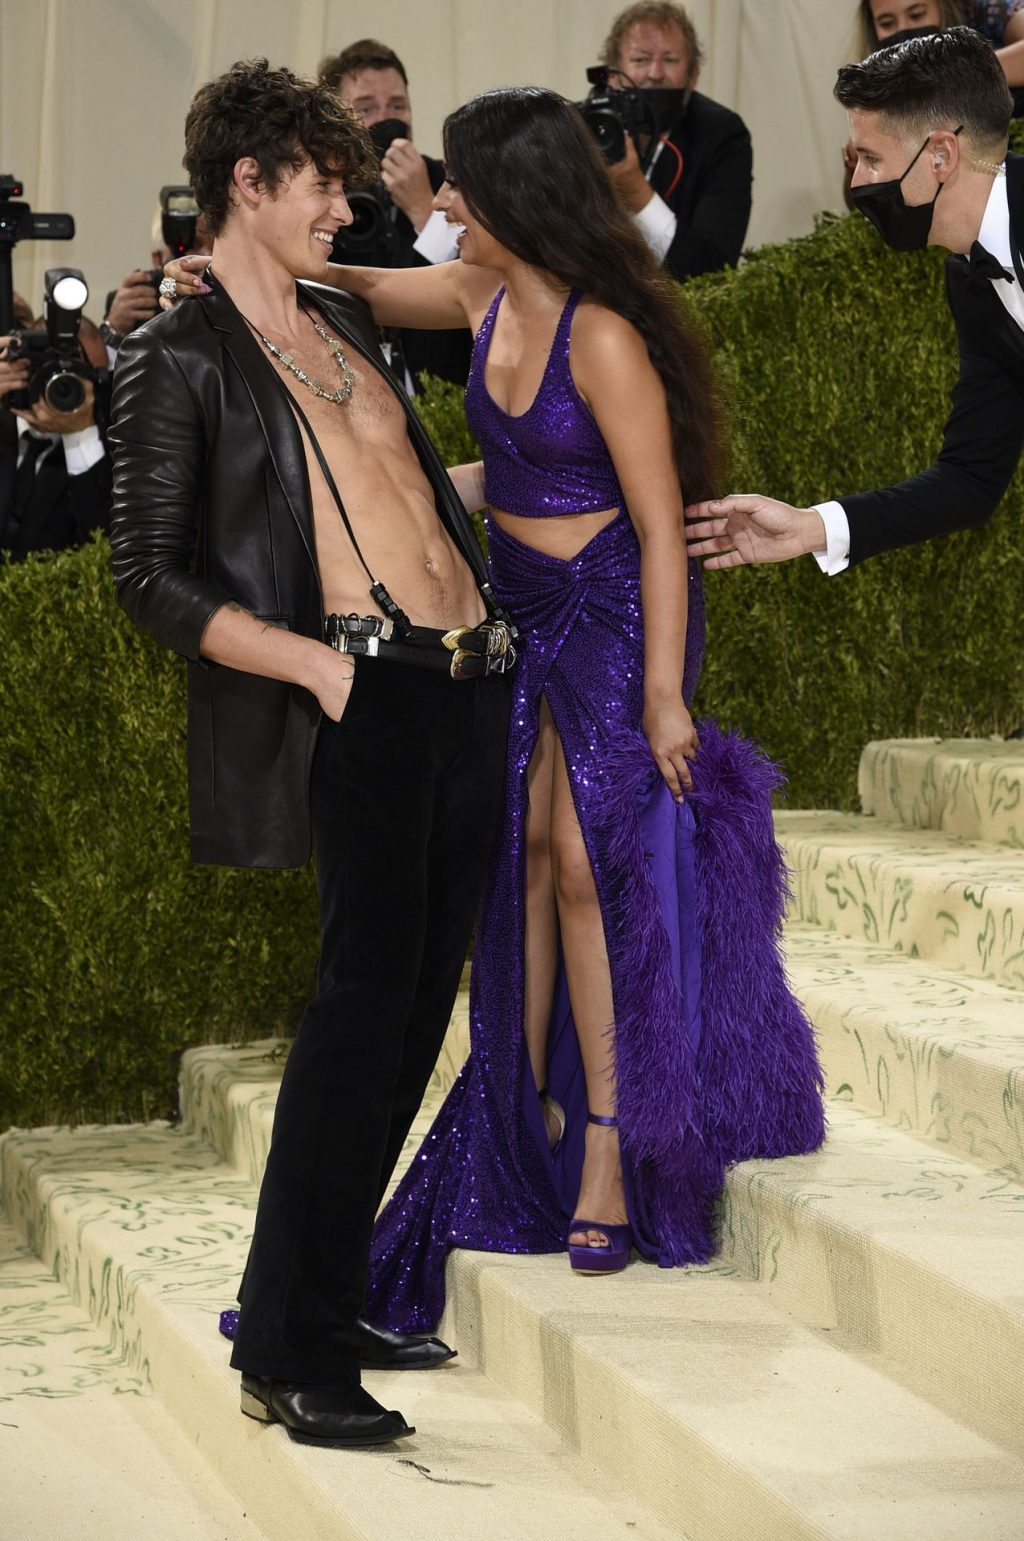 Shawn Mendes & Camila Cabello Arrive at the 2021 Met Gala in NYC (62 Photos)